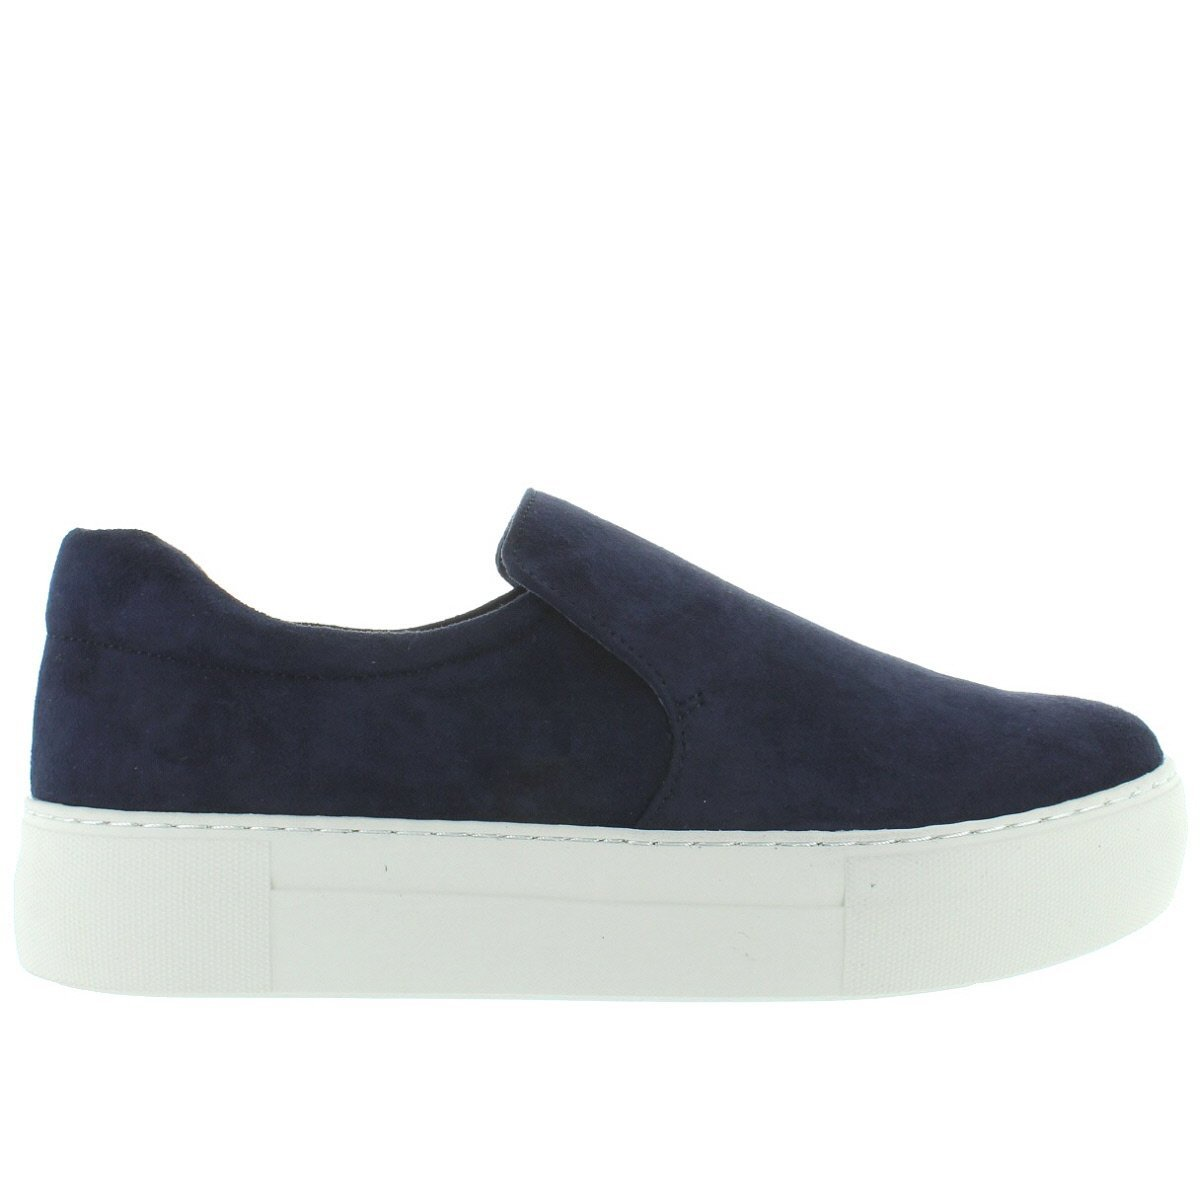 6ac86402a4bbd Amazon.com | J Slides Acer - Navy Suede Slip-On Flatform Sneaker | Shoes